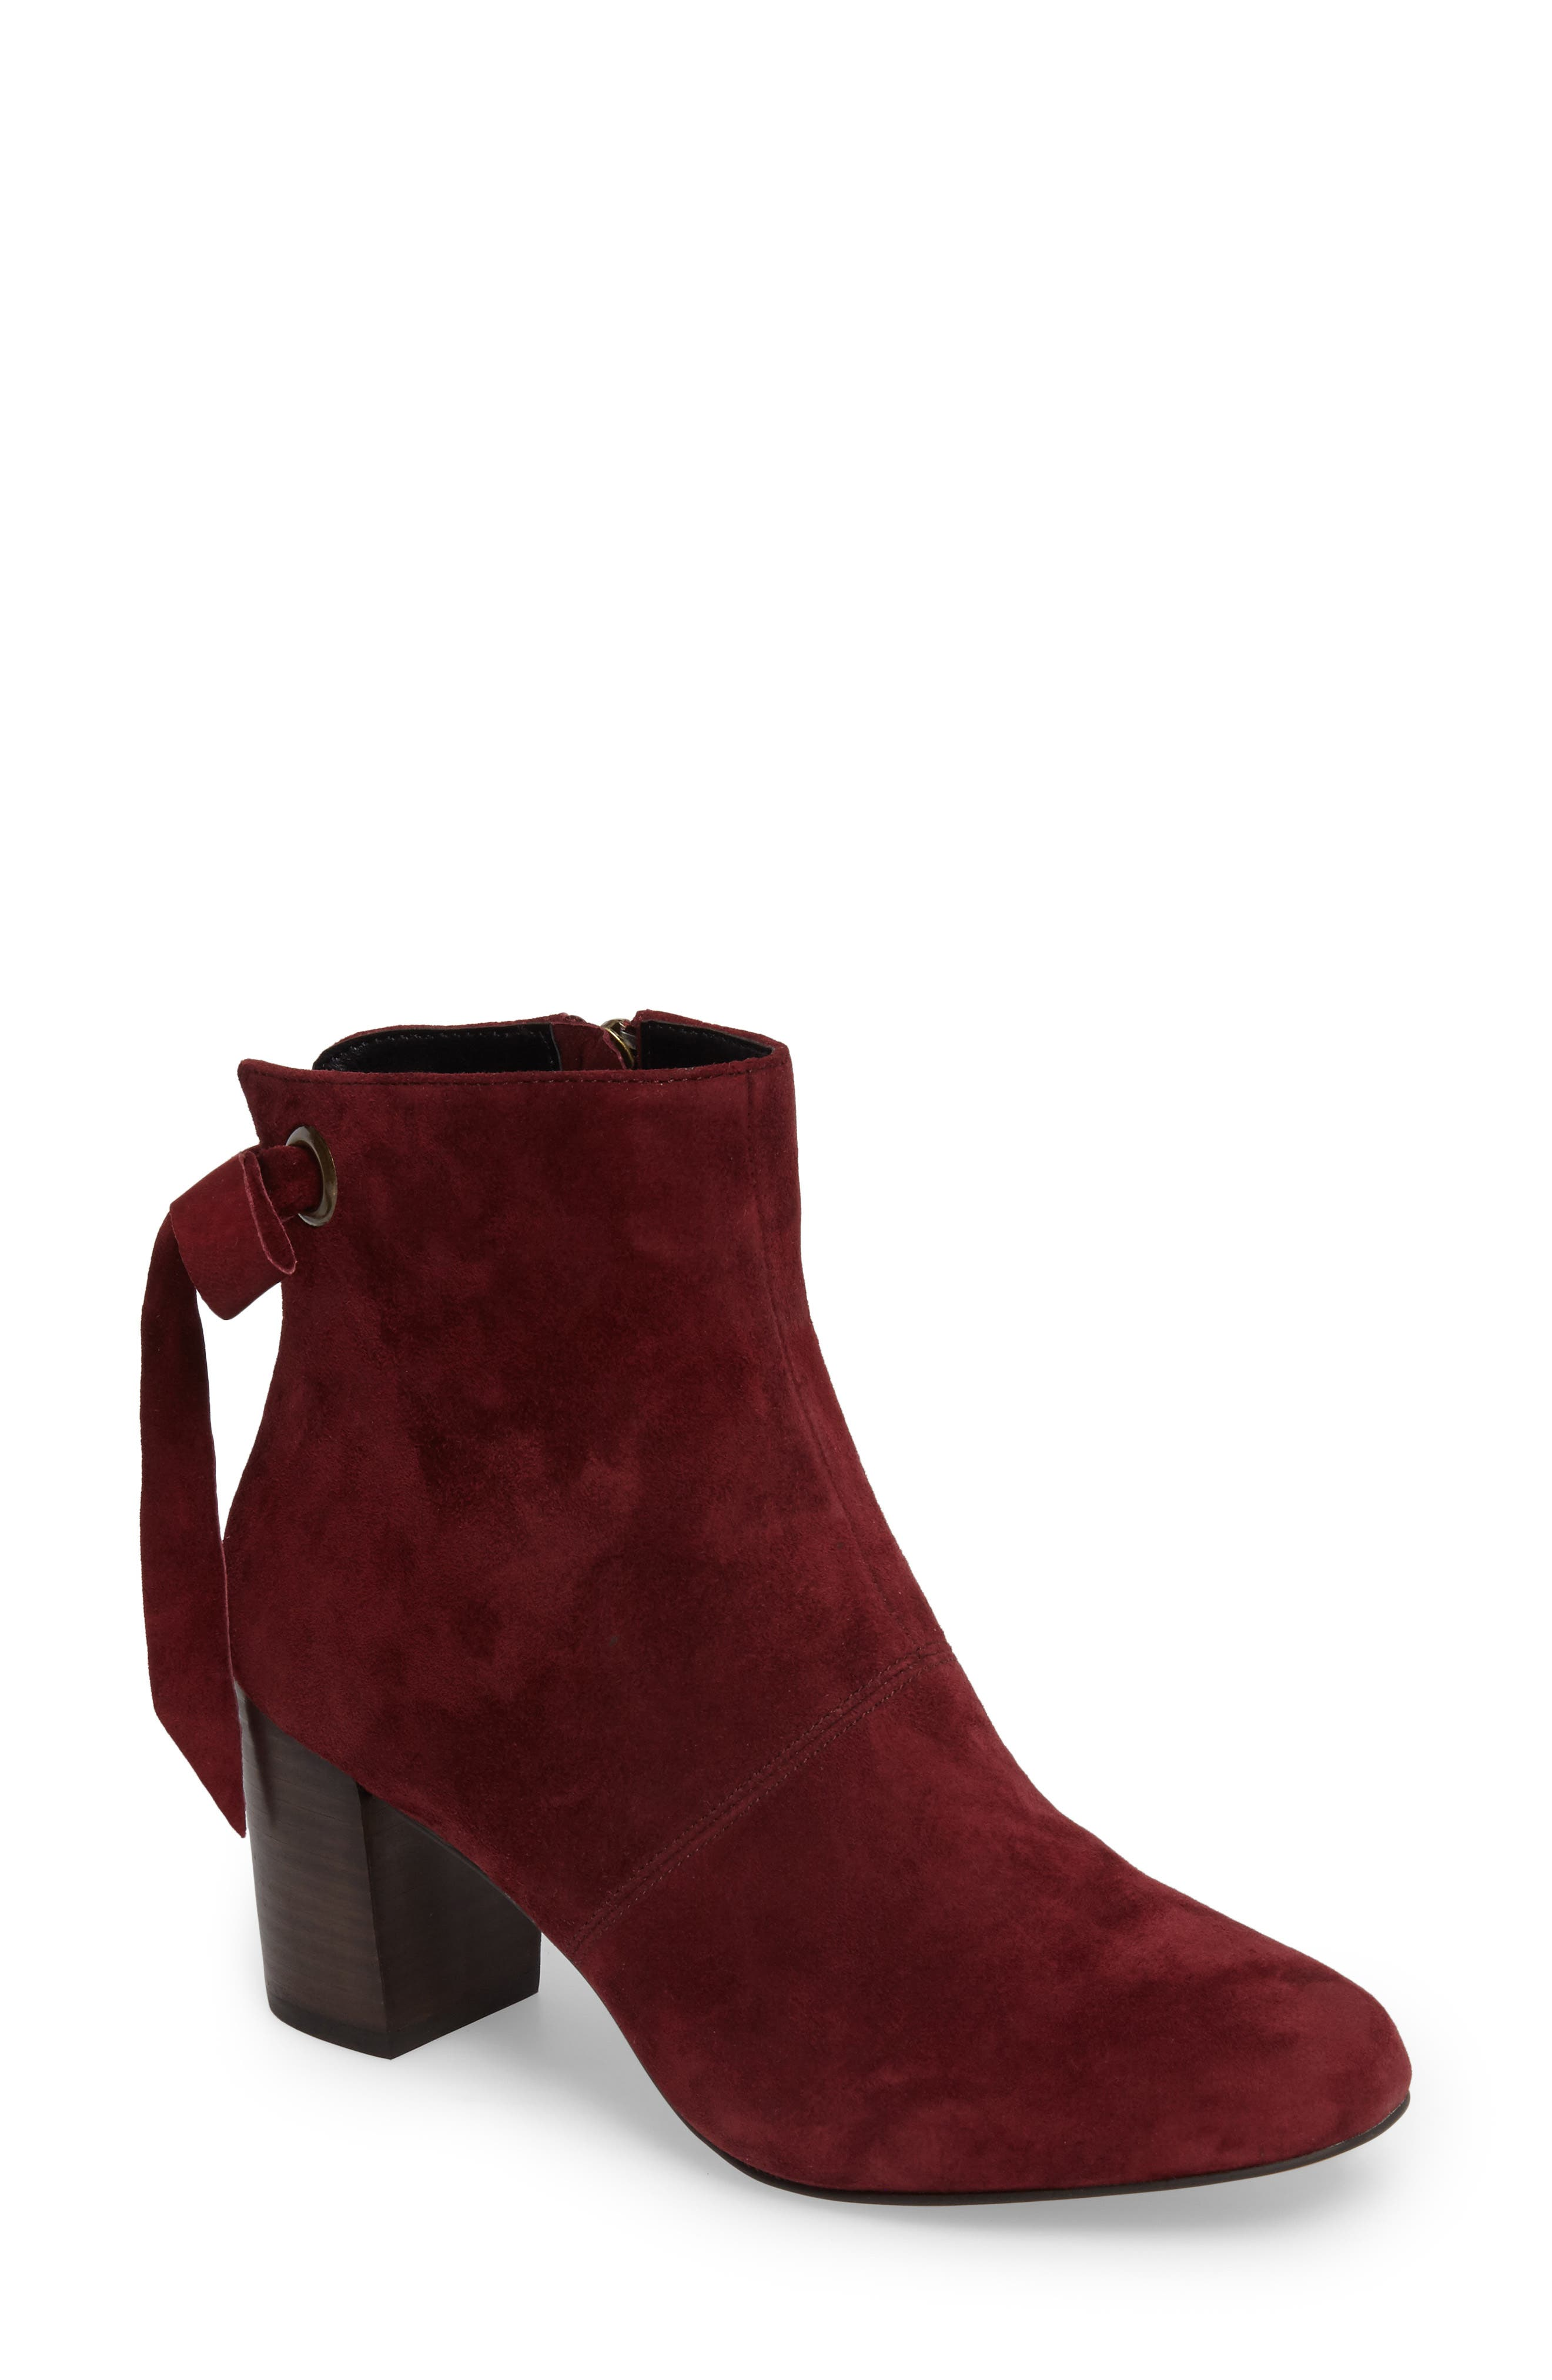 Roxbury Bootie,                             Main thumbnail 1, color,                             Rumba Red Suede